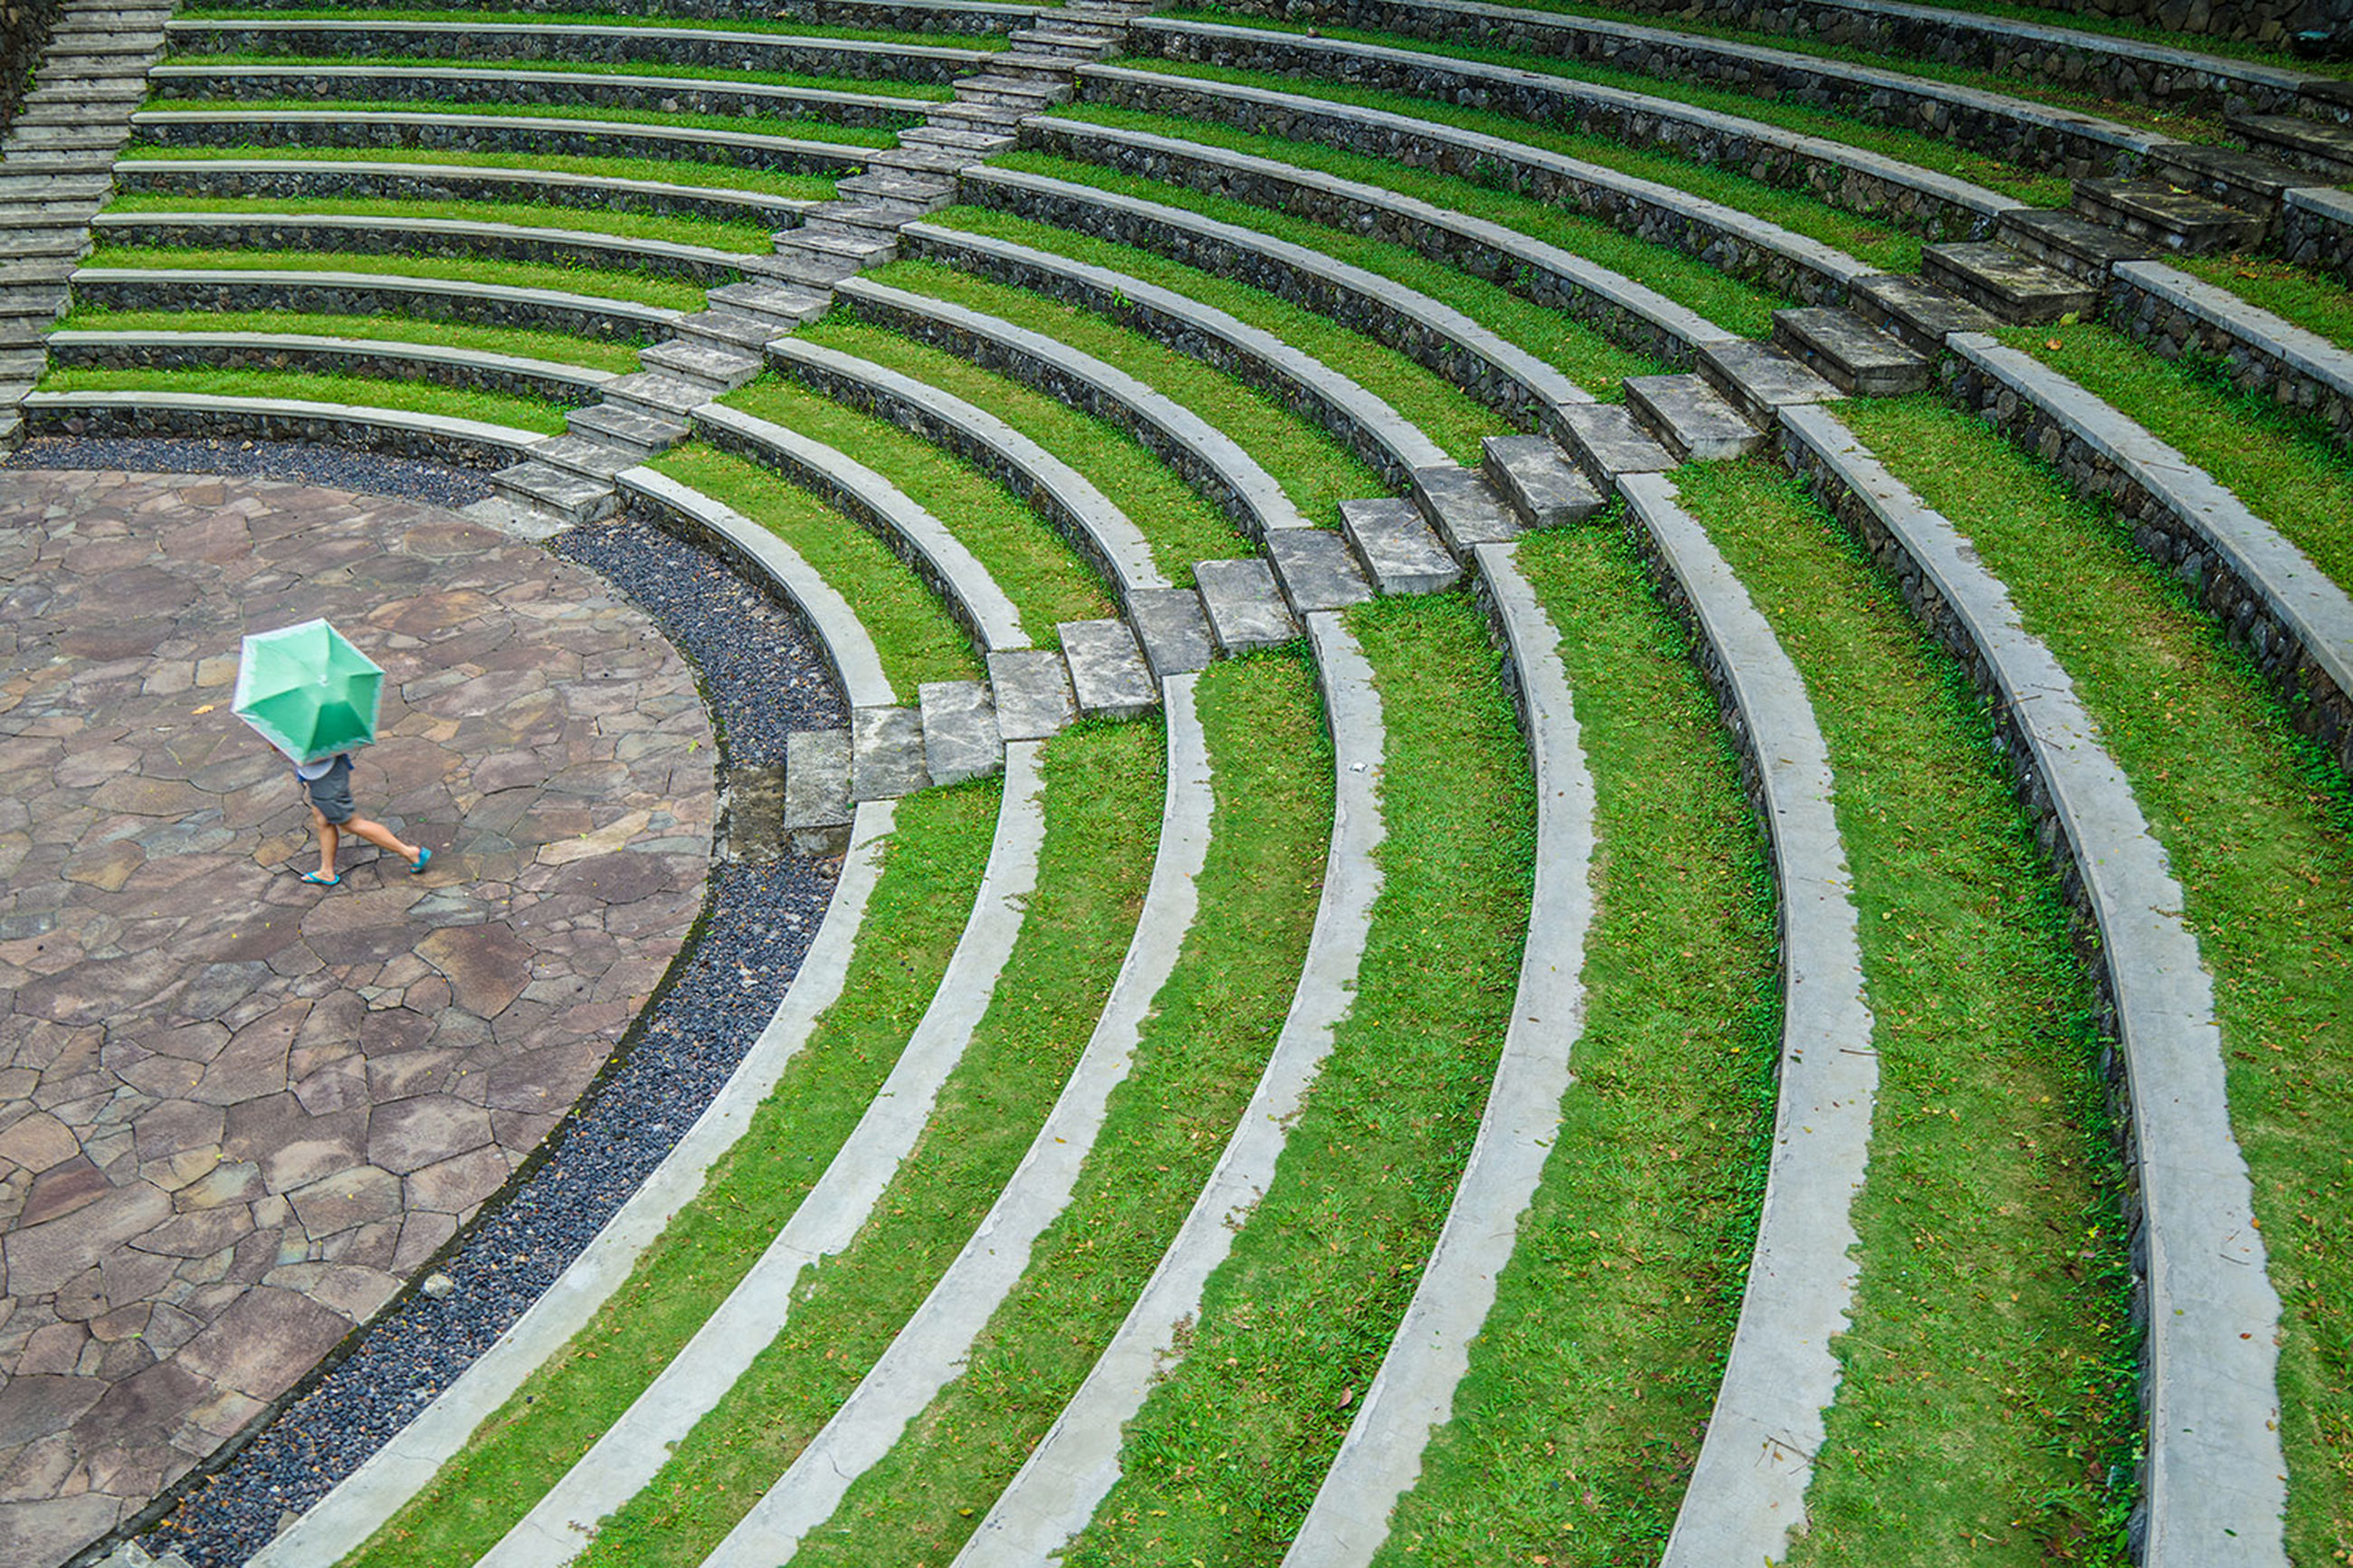 pattern, green color, full frame, backgrounds, design, circle, grass, textured, high angle view, growth, green, day, outdoors, built structure, plant, geometric shape, no people, curve, repetition, nature